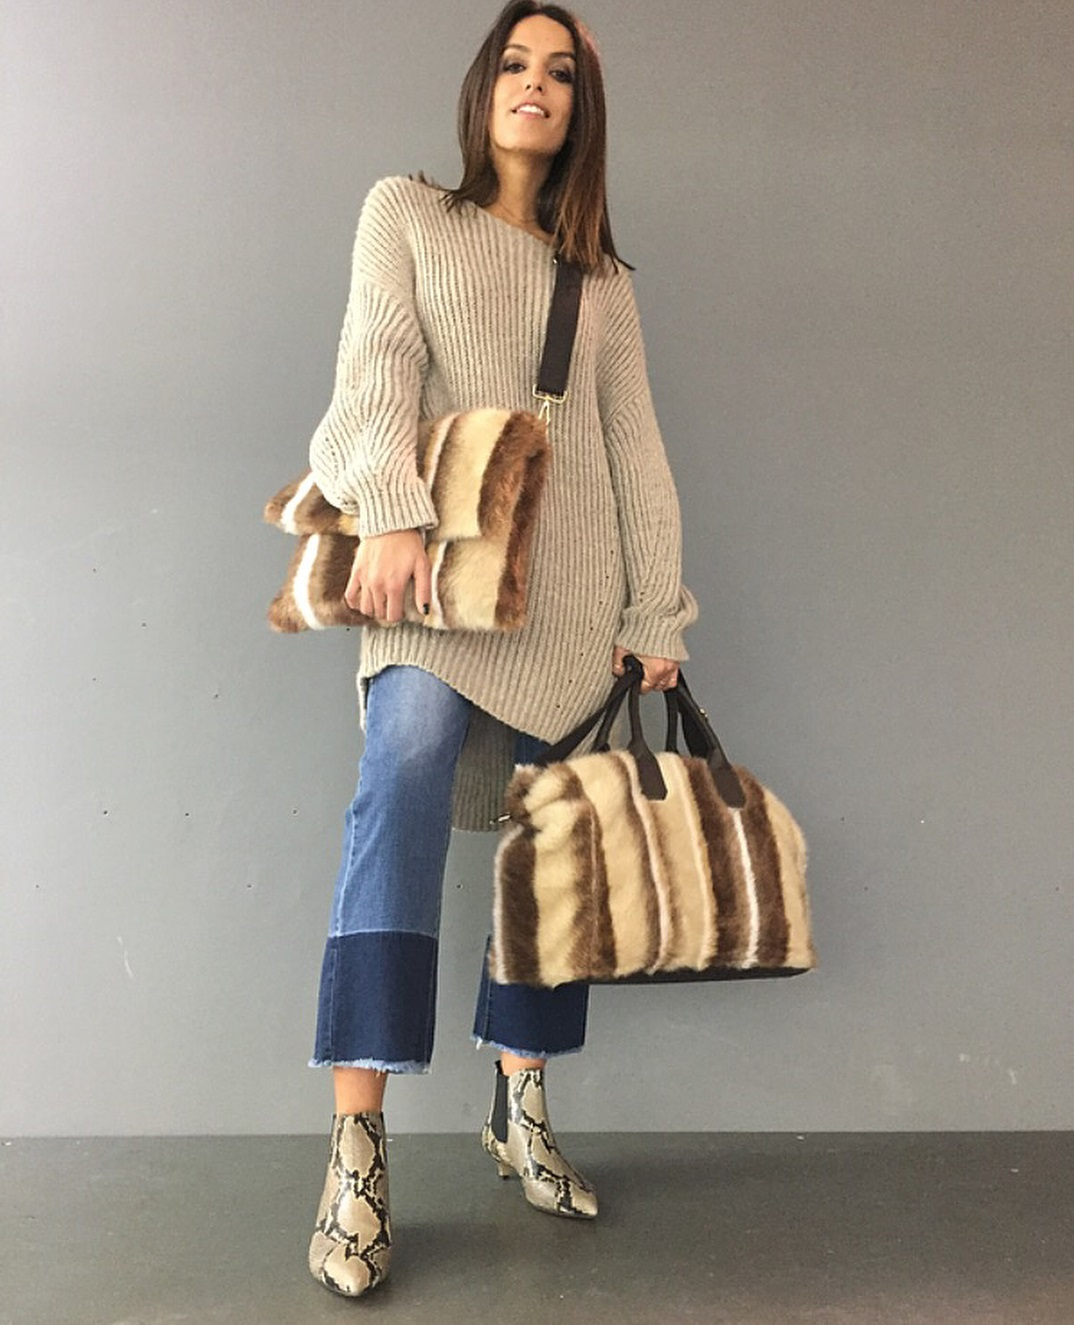 Beige Oversized Sweater With Denim Crop Jeans, Pointed Awesome Shoes And Fur Bag